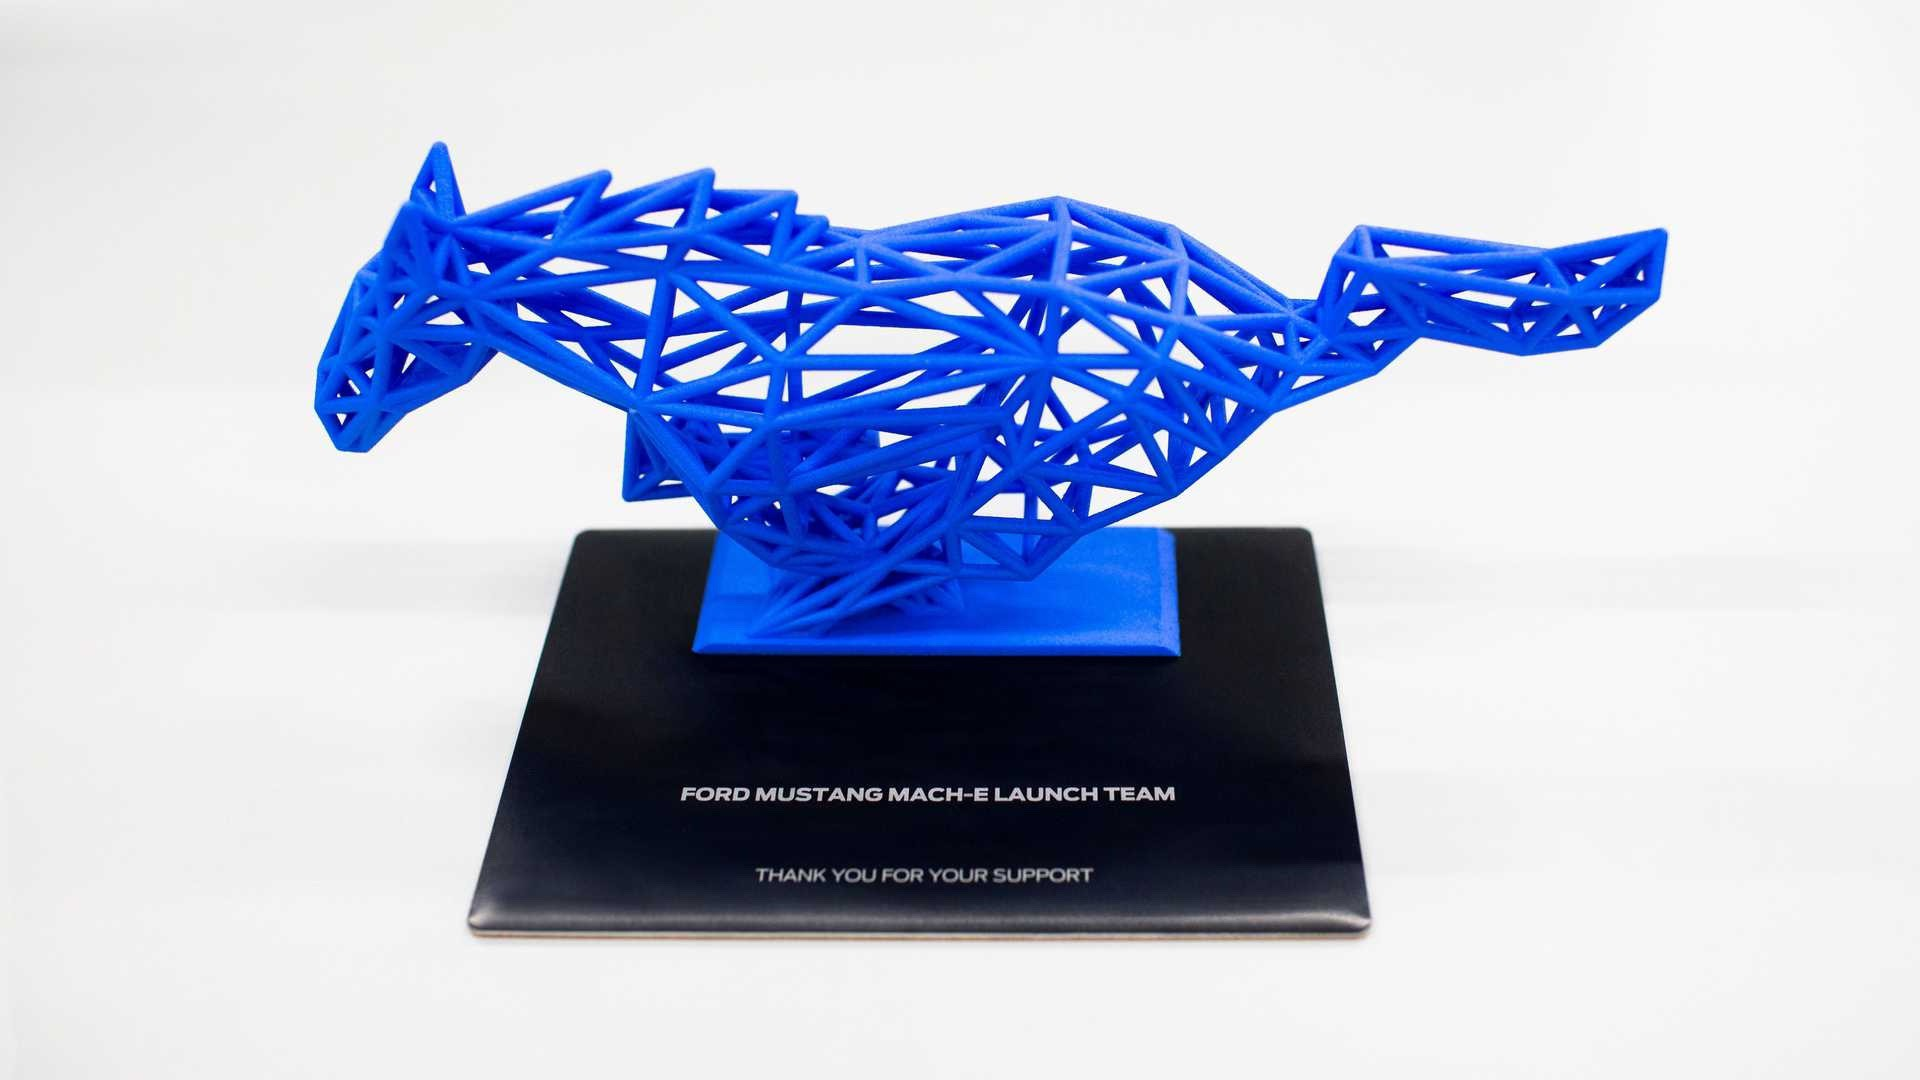 Ford_Mustang_Mach-E_3D-Printed_Sculpture-0000